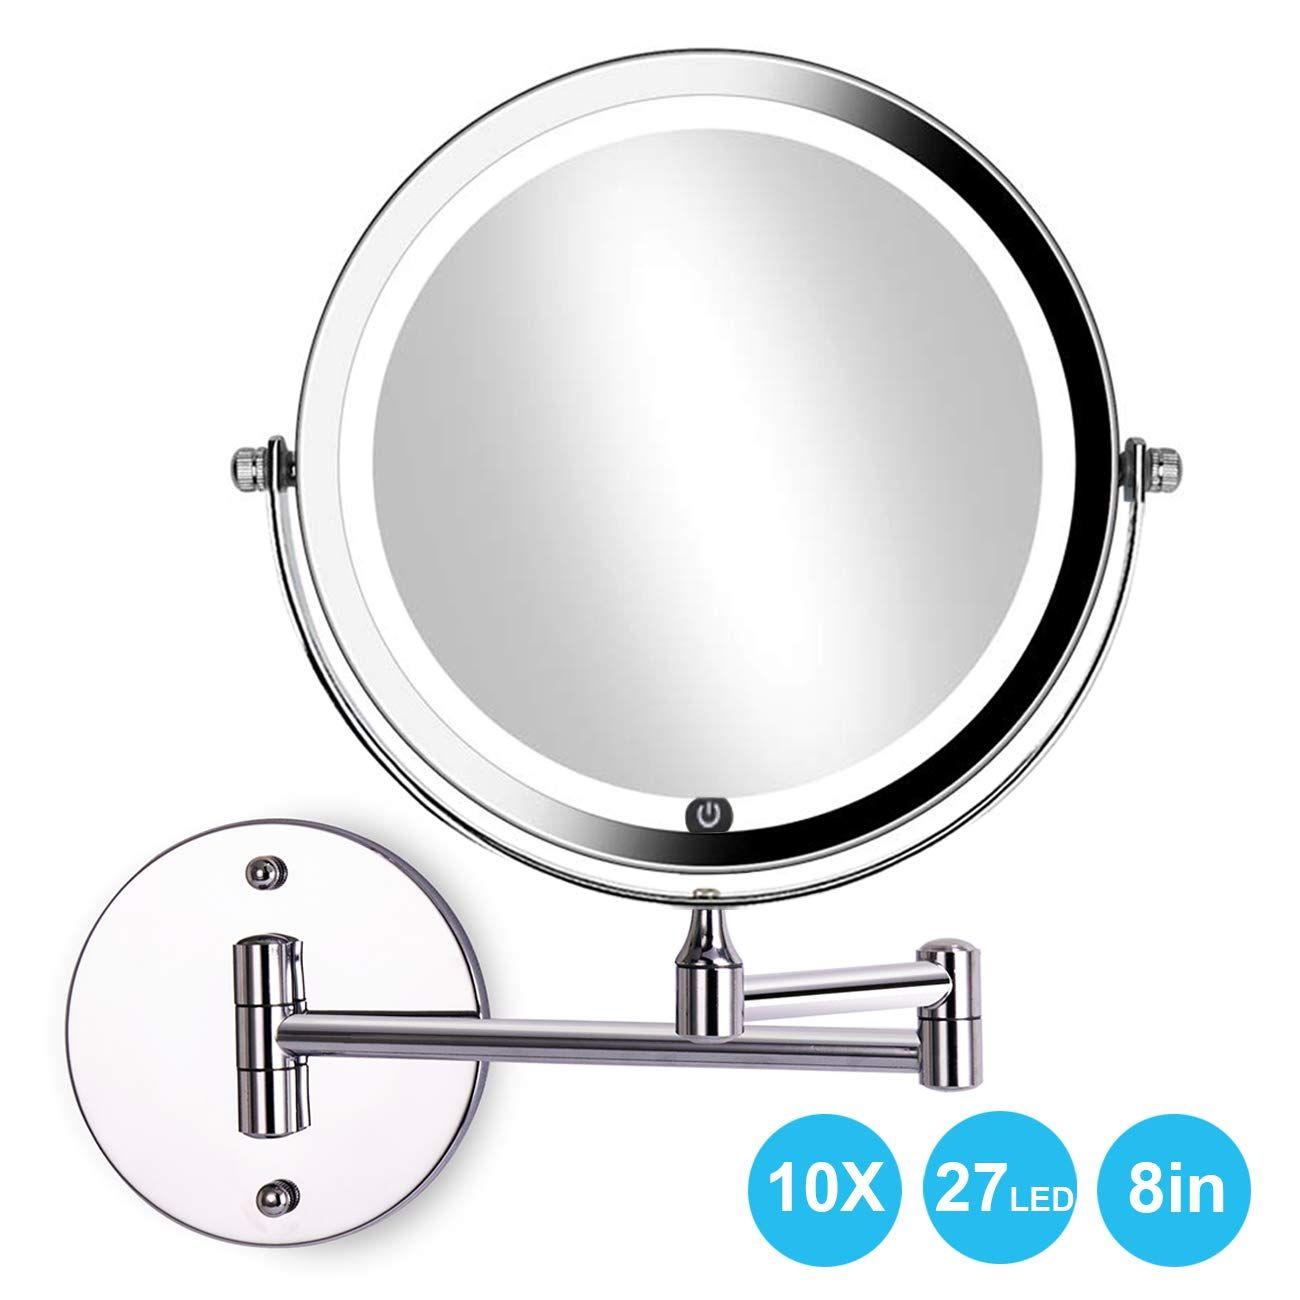 Acolar Led 8in Wall Mounted Makeup Mirror With Lights 10x